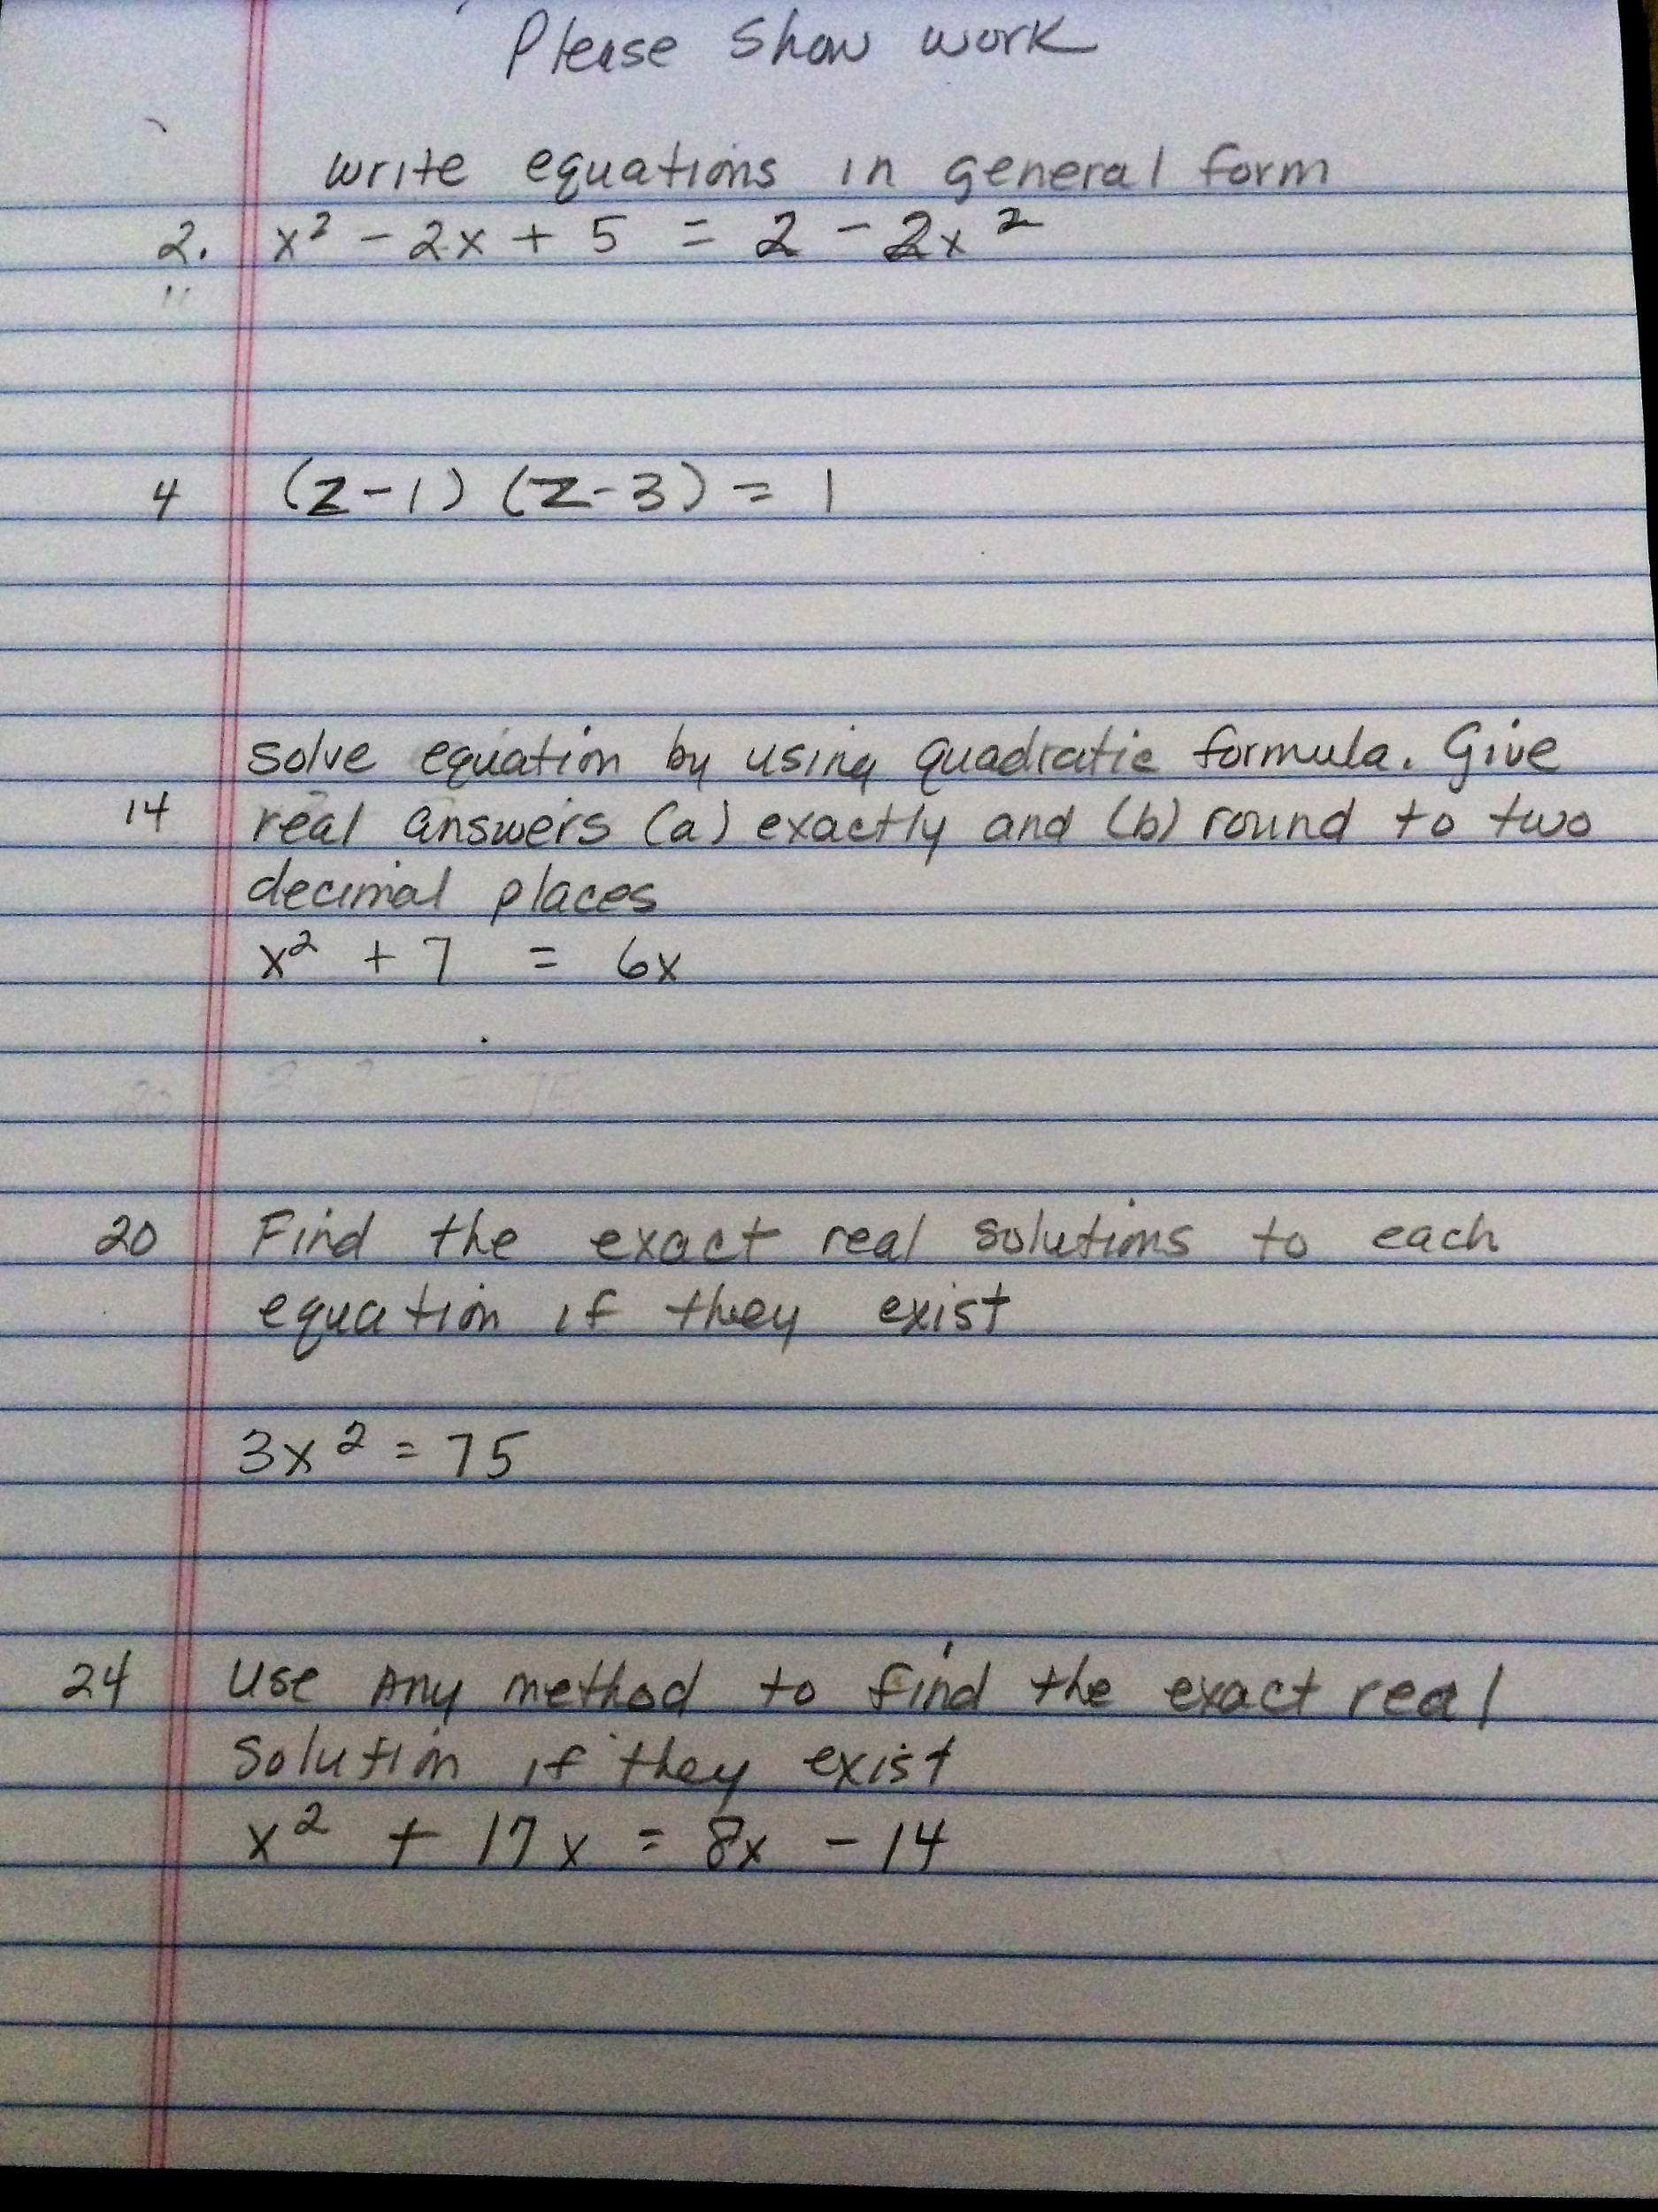 Solved: Write Equations In General Form X^2-2x+5 = 2-2X^2